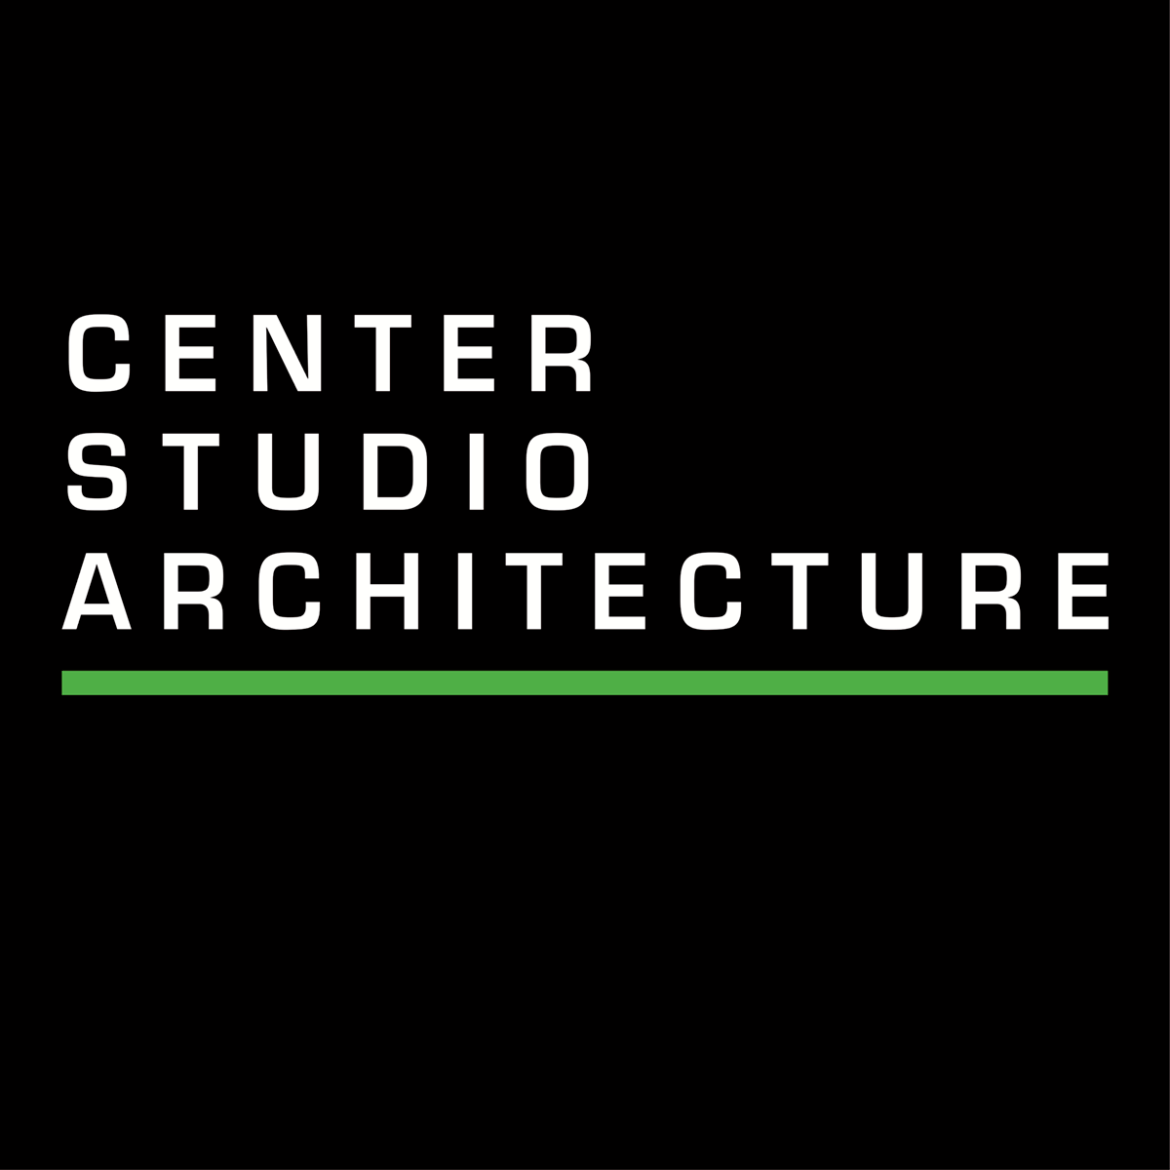 center-studio-architecture-logo